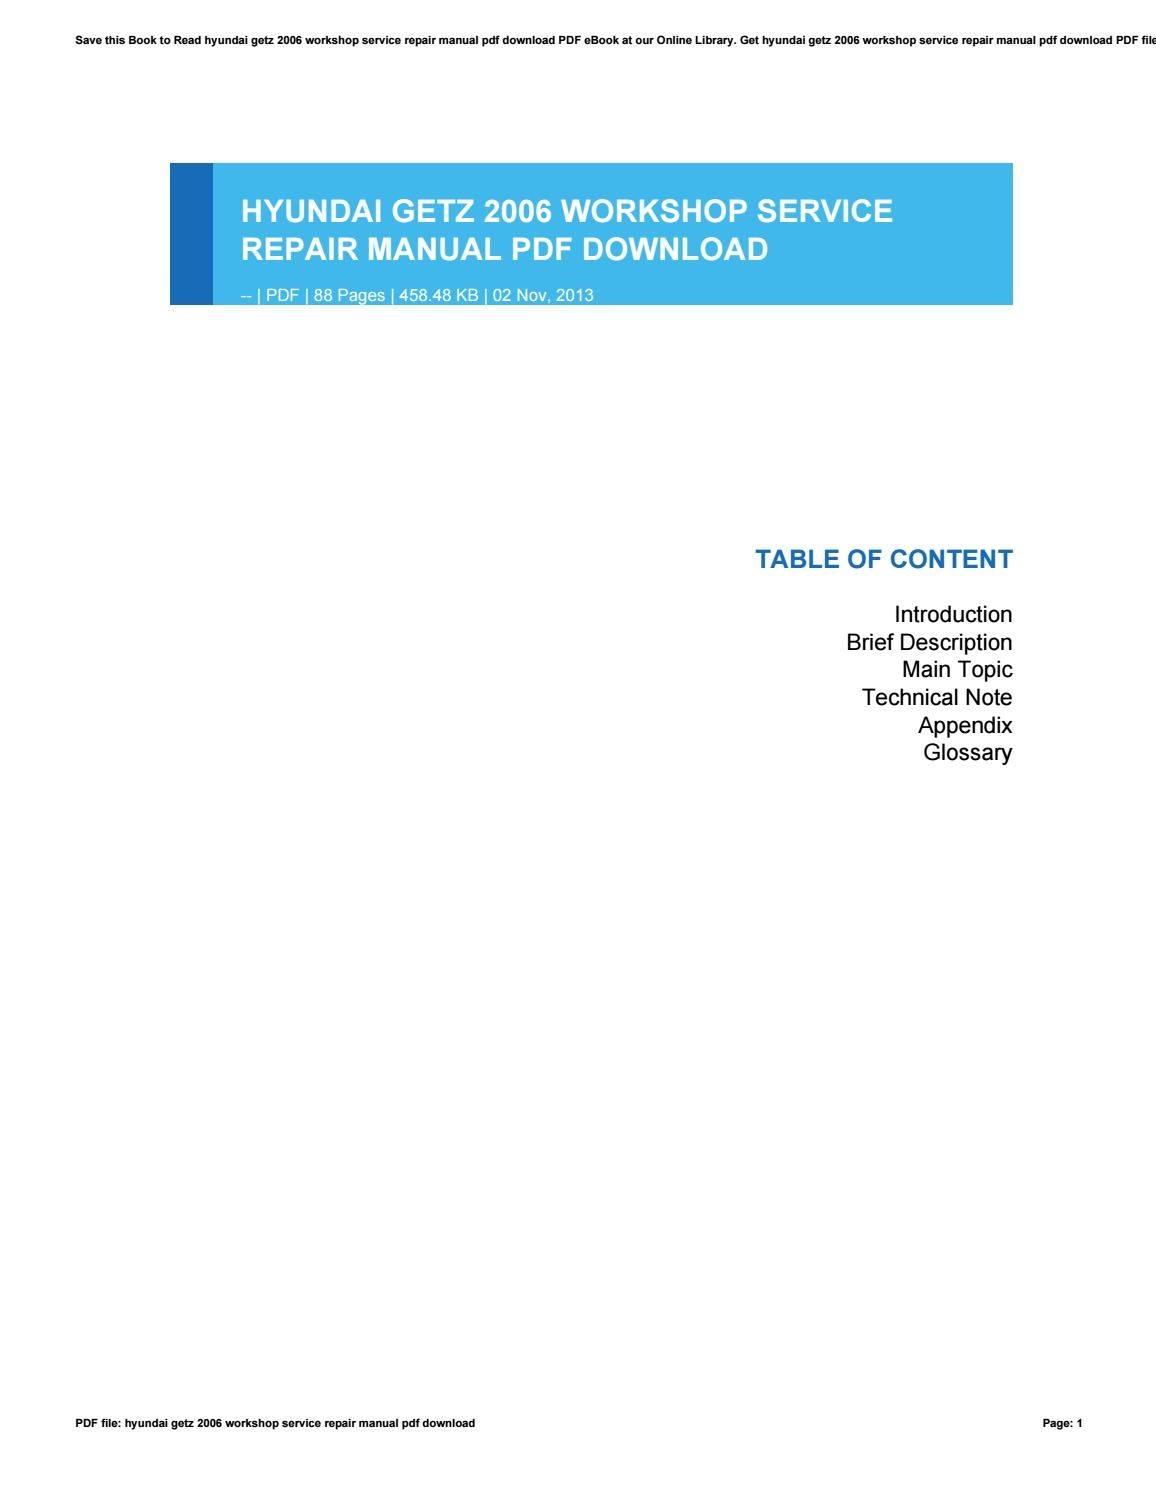 Hyundai getz 2006 workshop service repair manual pdf download by t961 -  issuu